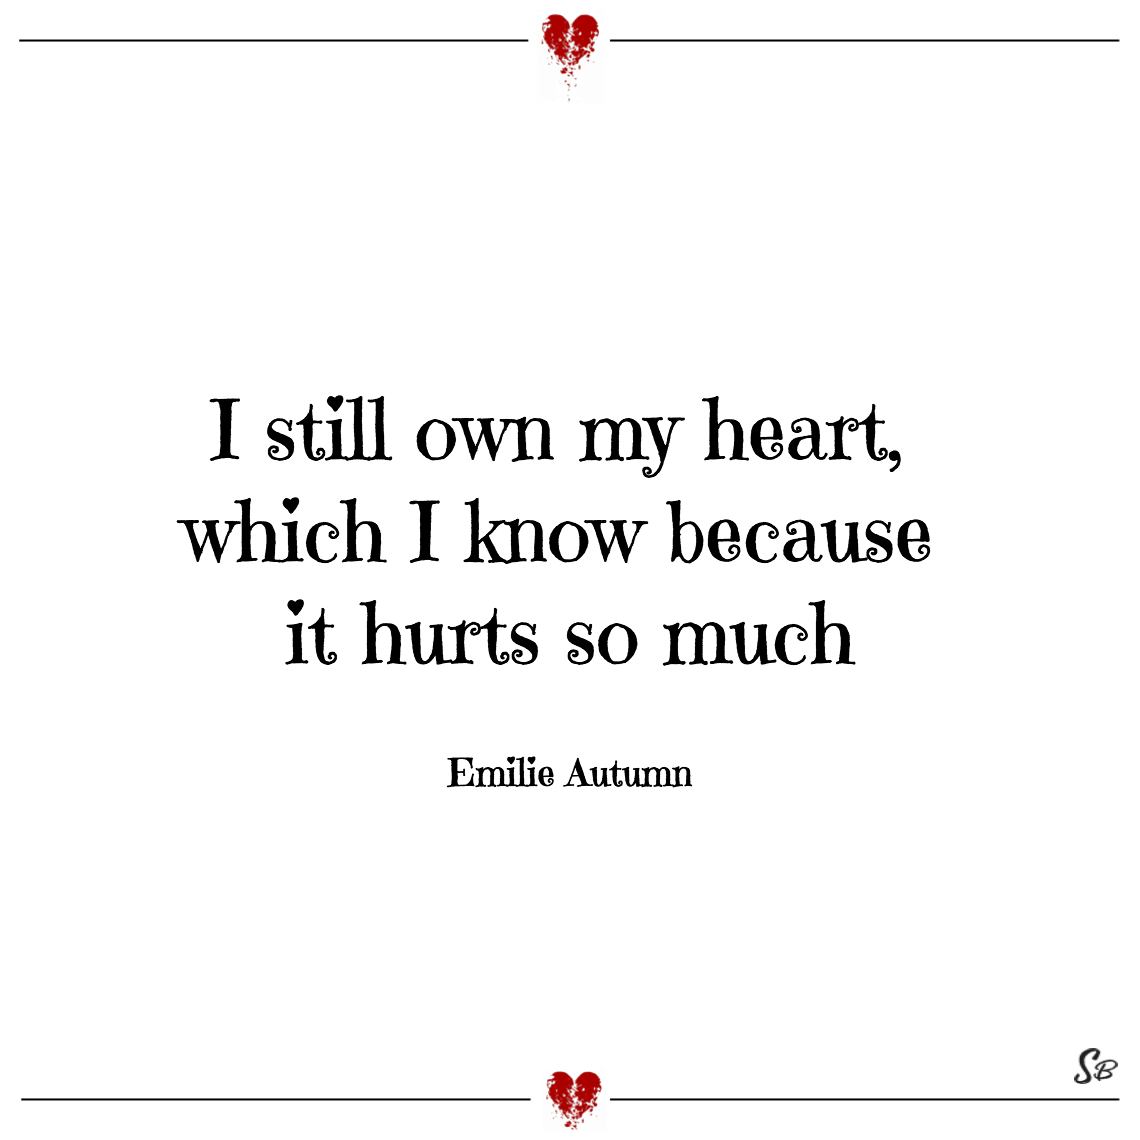 I still own my heart, which i know because it hurts so much emilie autumn